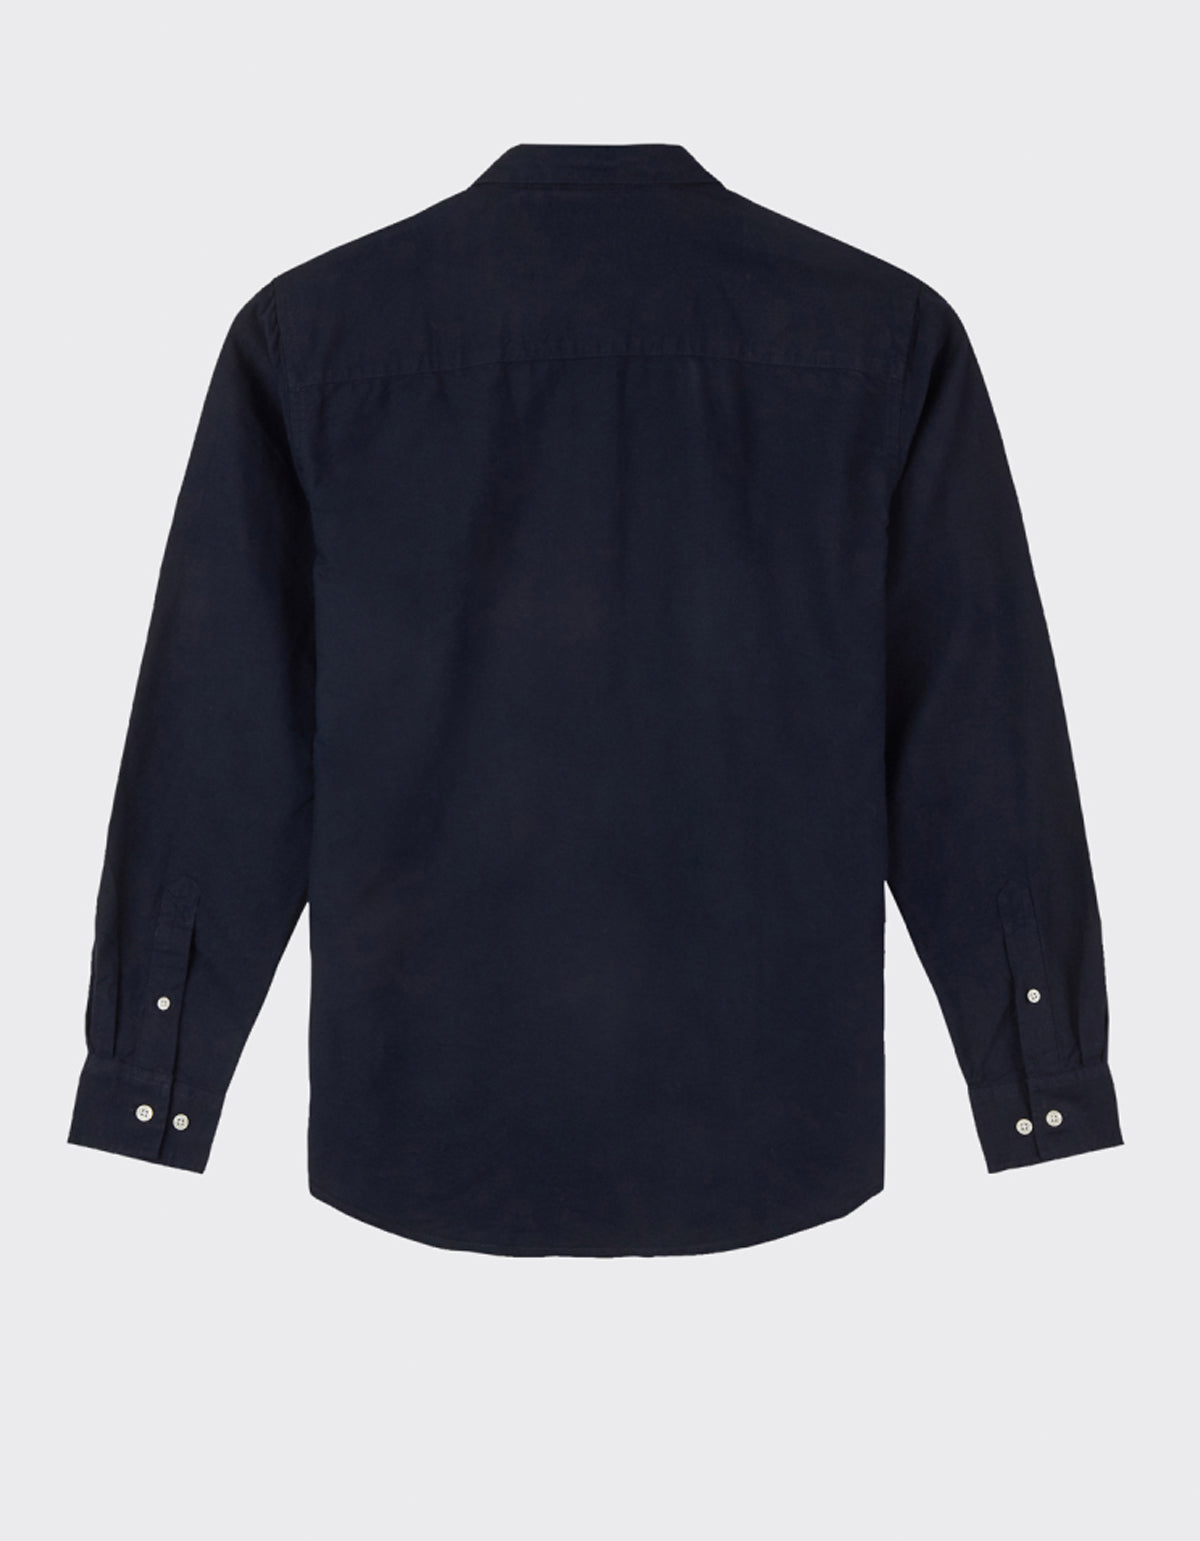 Minimum Jay 2.0 Shirt Navy Blazer